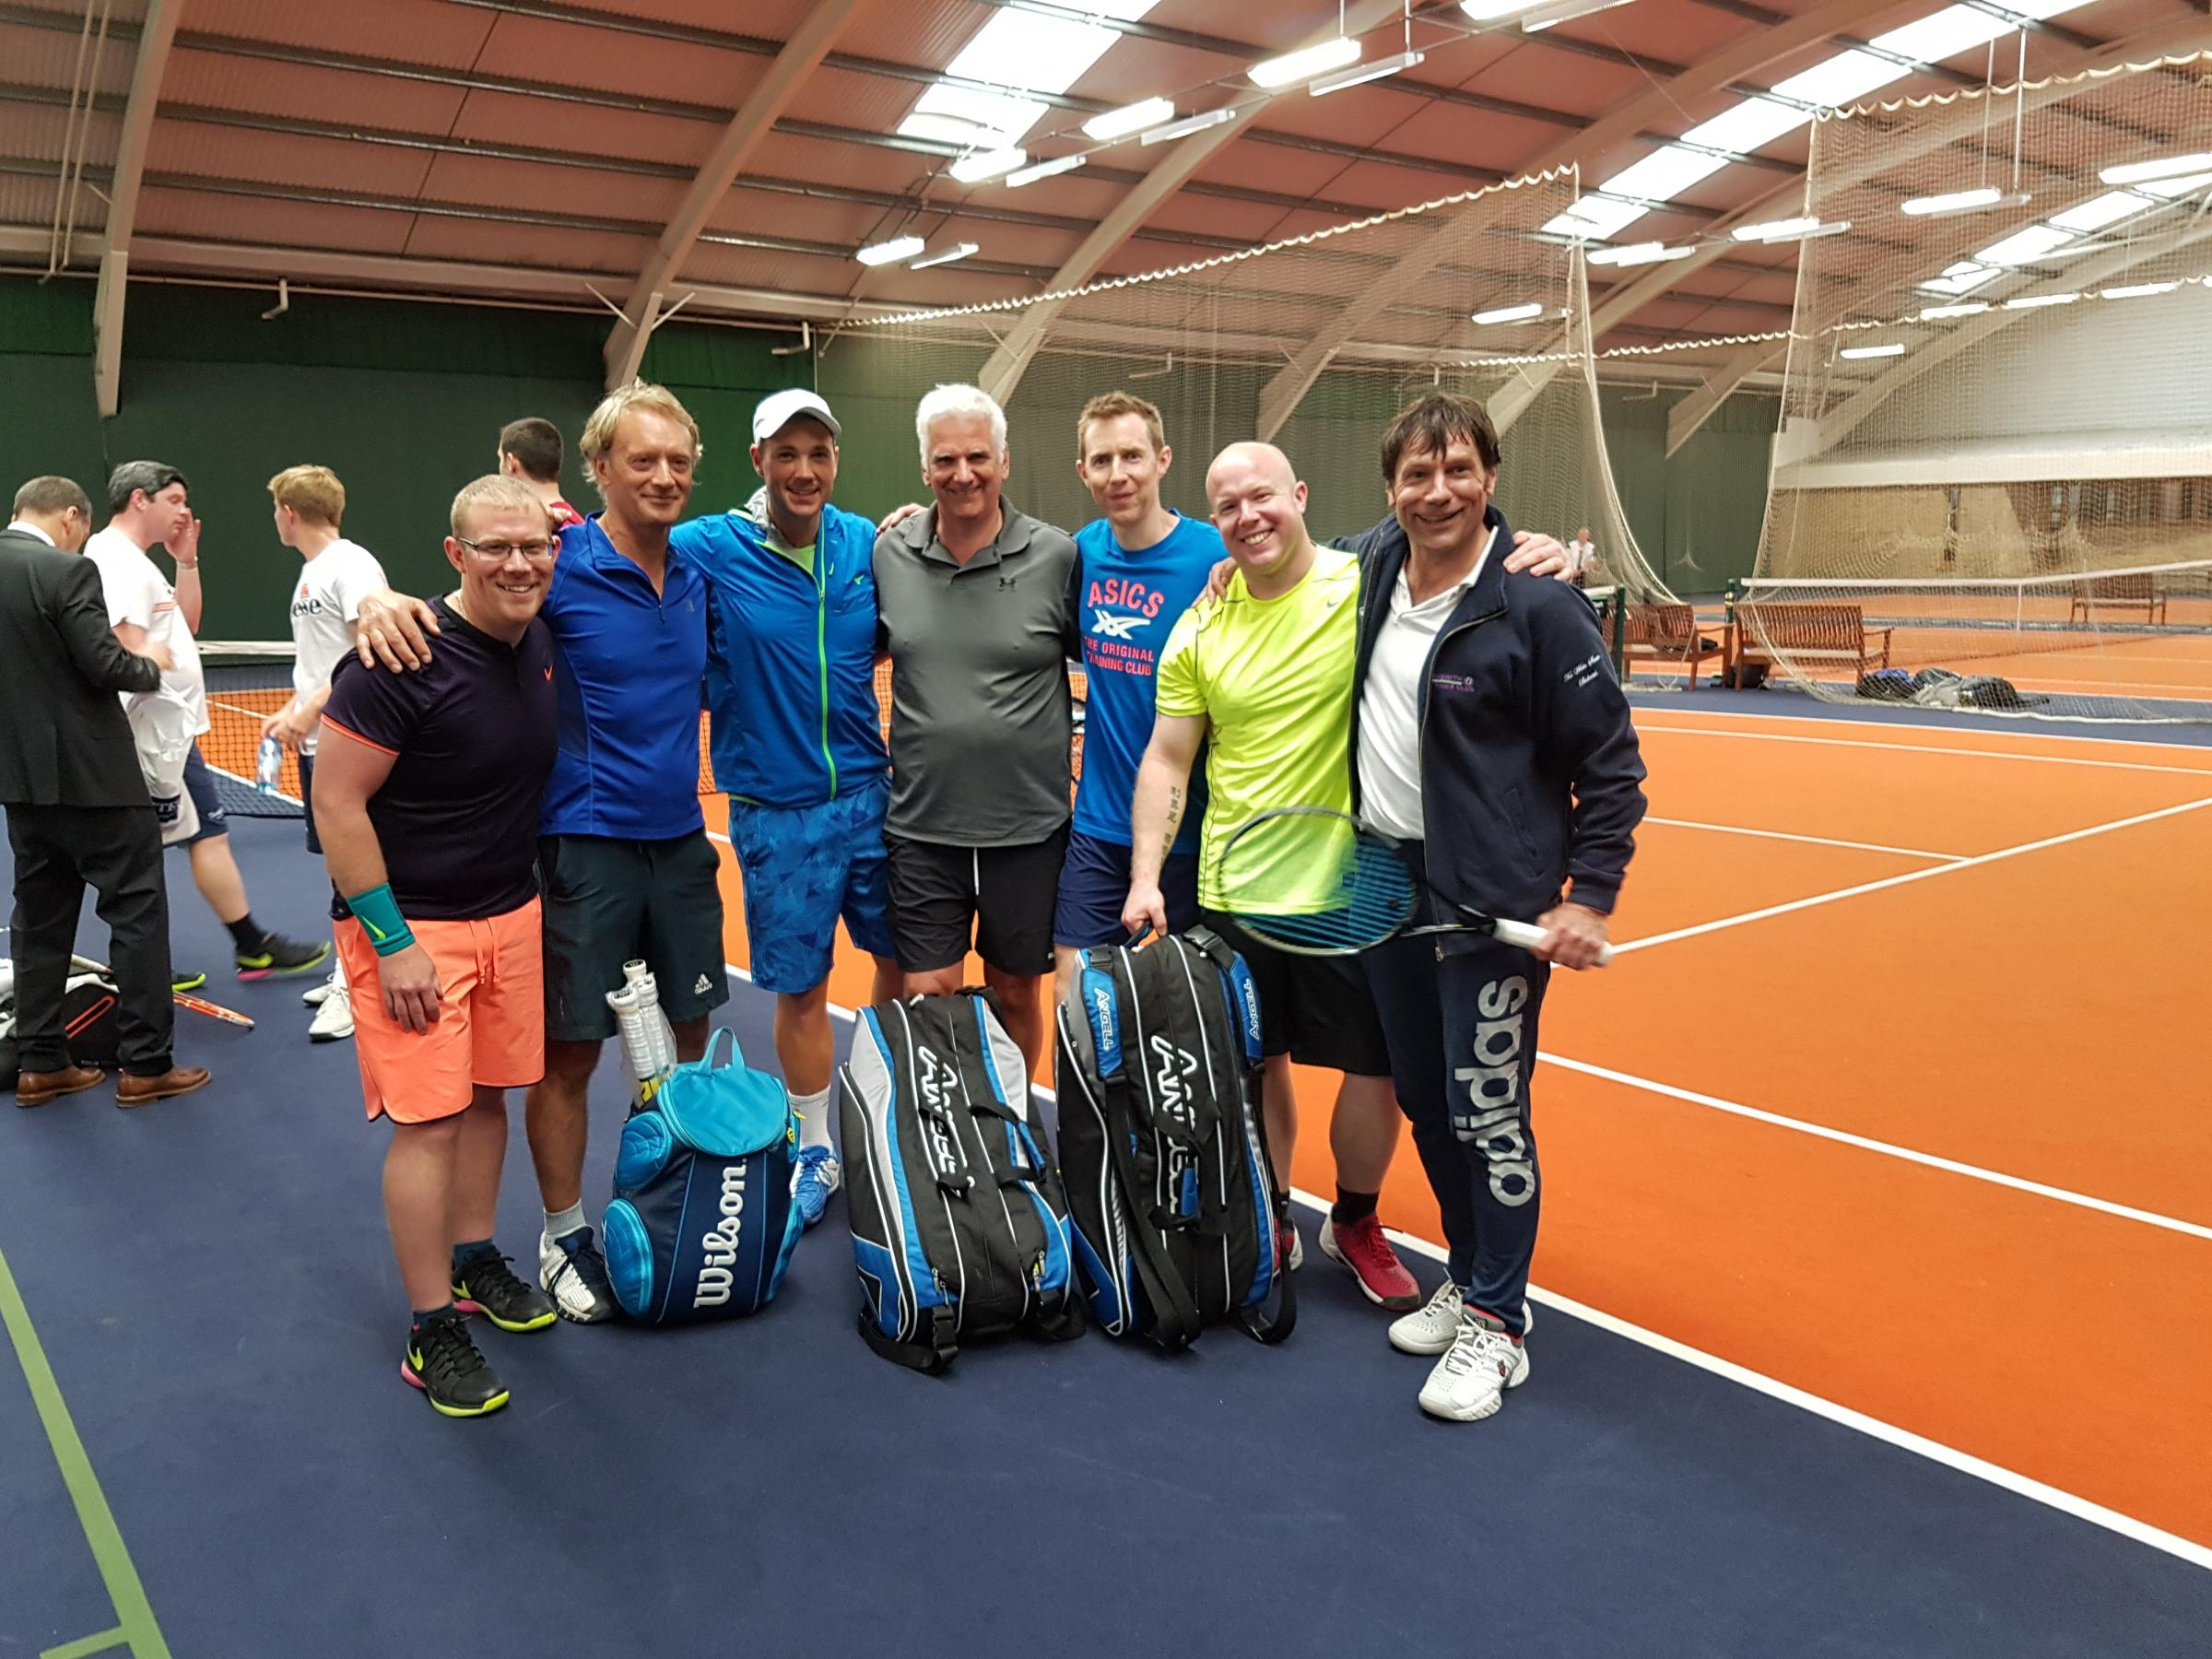 Bubwith's first team are pictured at a tennis festival in Leeds with ATP Tour player and Roger Federer's second round opponent at Wimbledon last year, Marcus Willis, third from left, and Wimbledon 2012 men's doubles champion Jonny Marray, third from rig